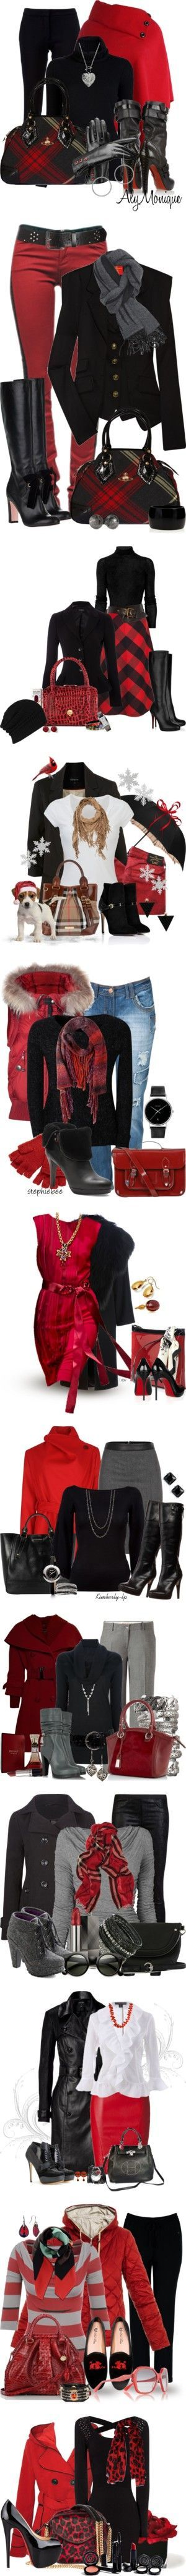 """Red and Black Contest"" by jackie22 ❤ liked on Polyvore"